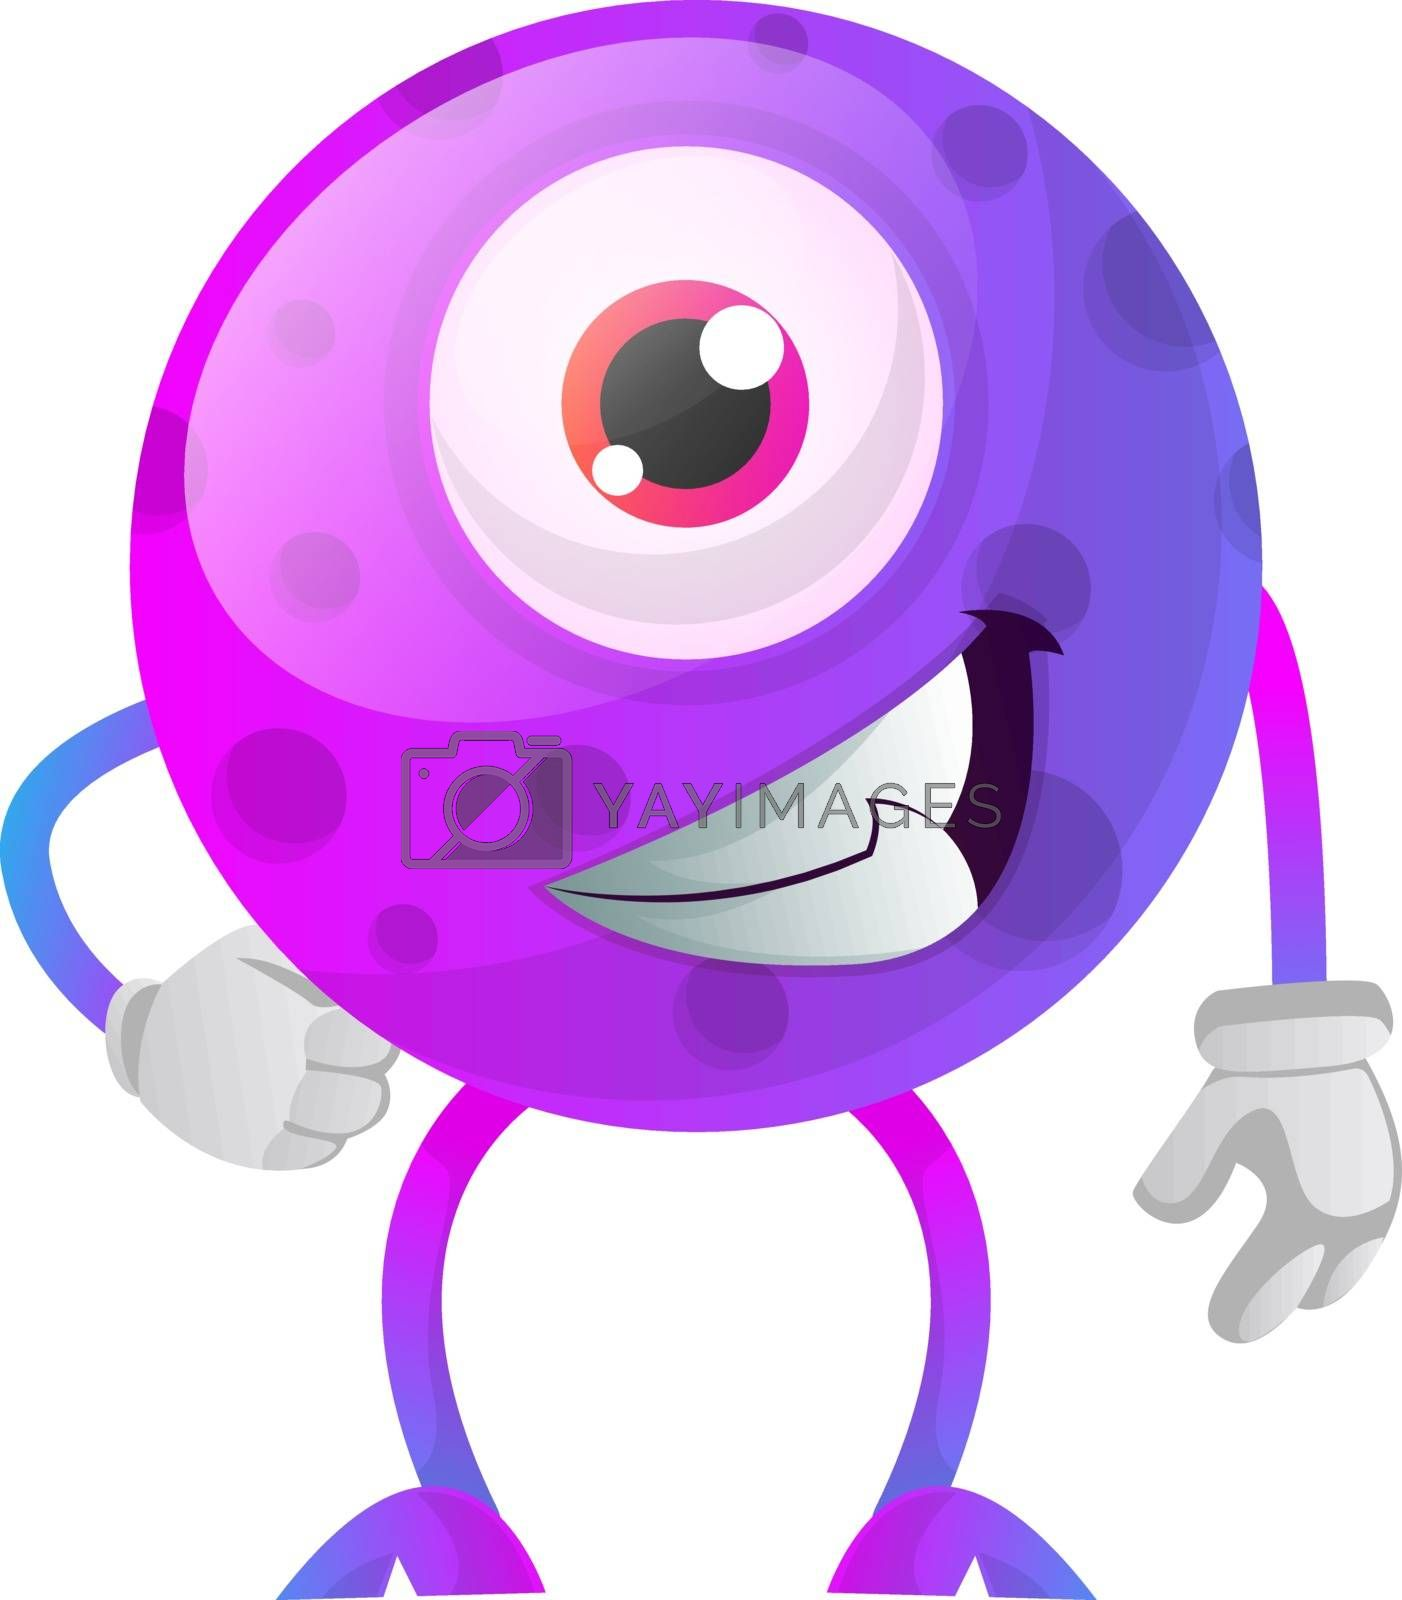 Royalty free image of Chill out purple monster with one eye illustration vector on whi by Morphart